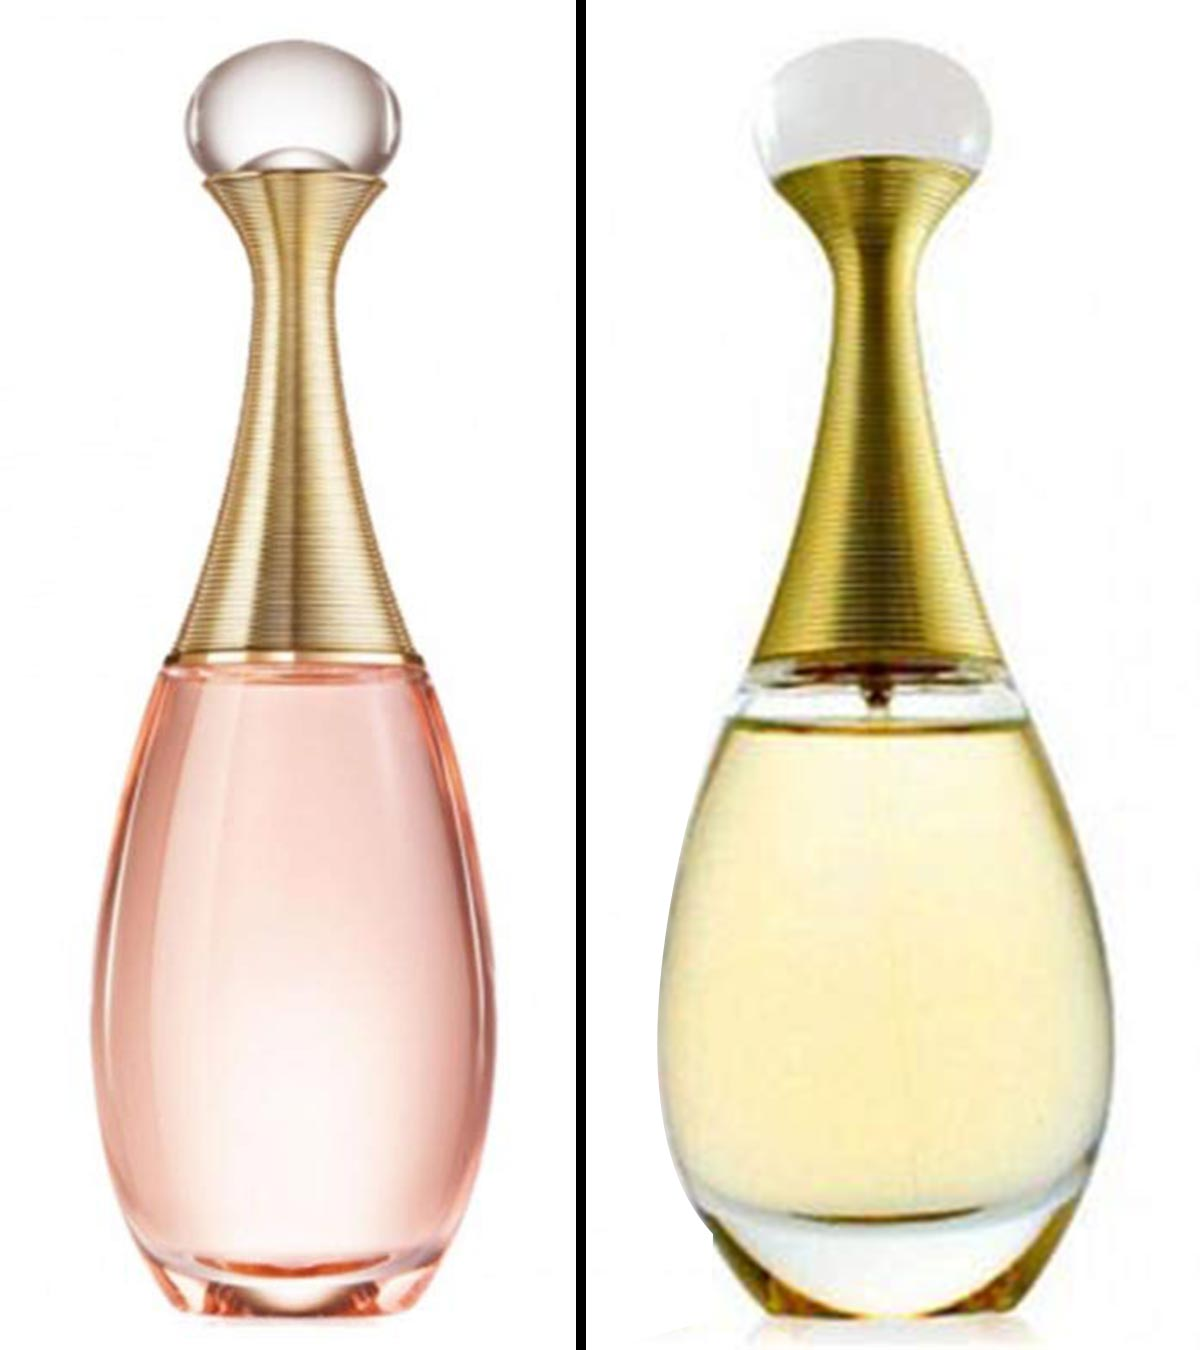 10 Best Dior Perfumes For Women Of 2020